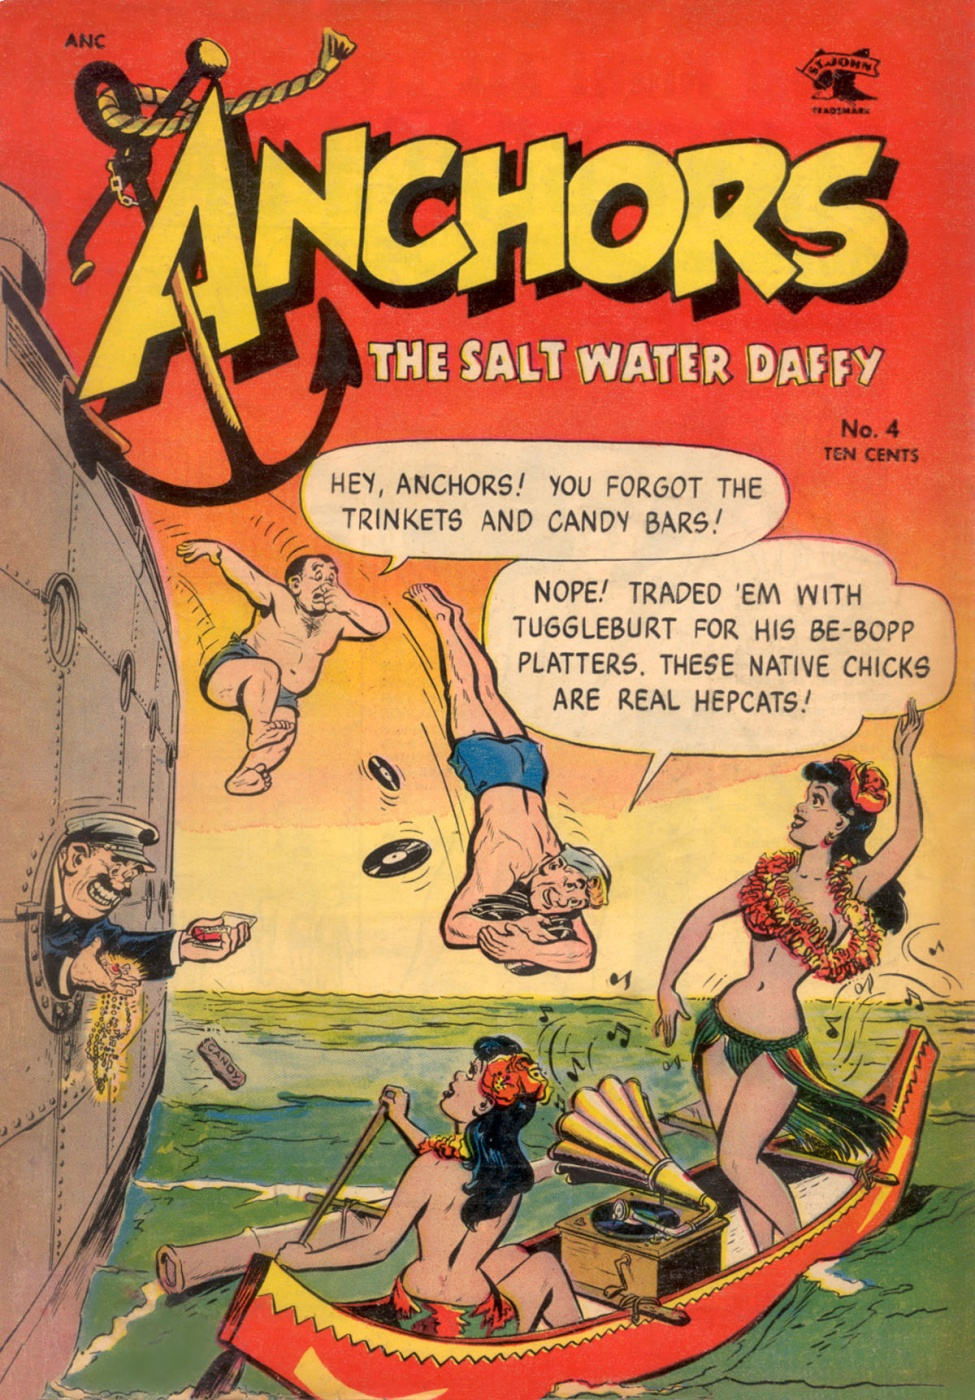 Anchors the Salt Water Daffy - Comics (c) (1)